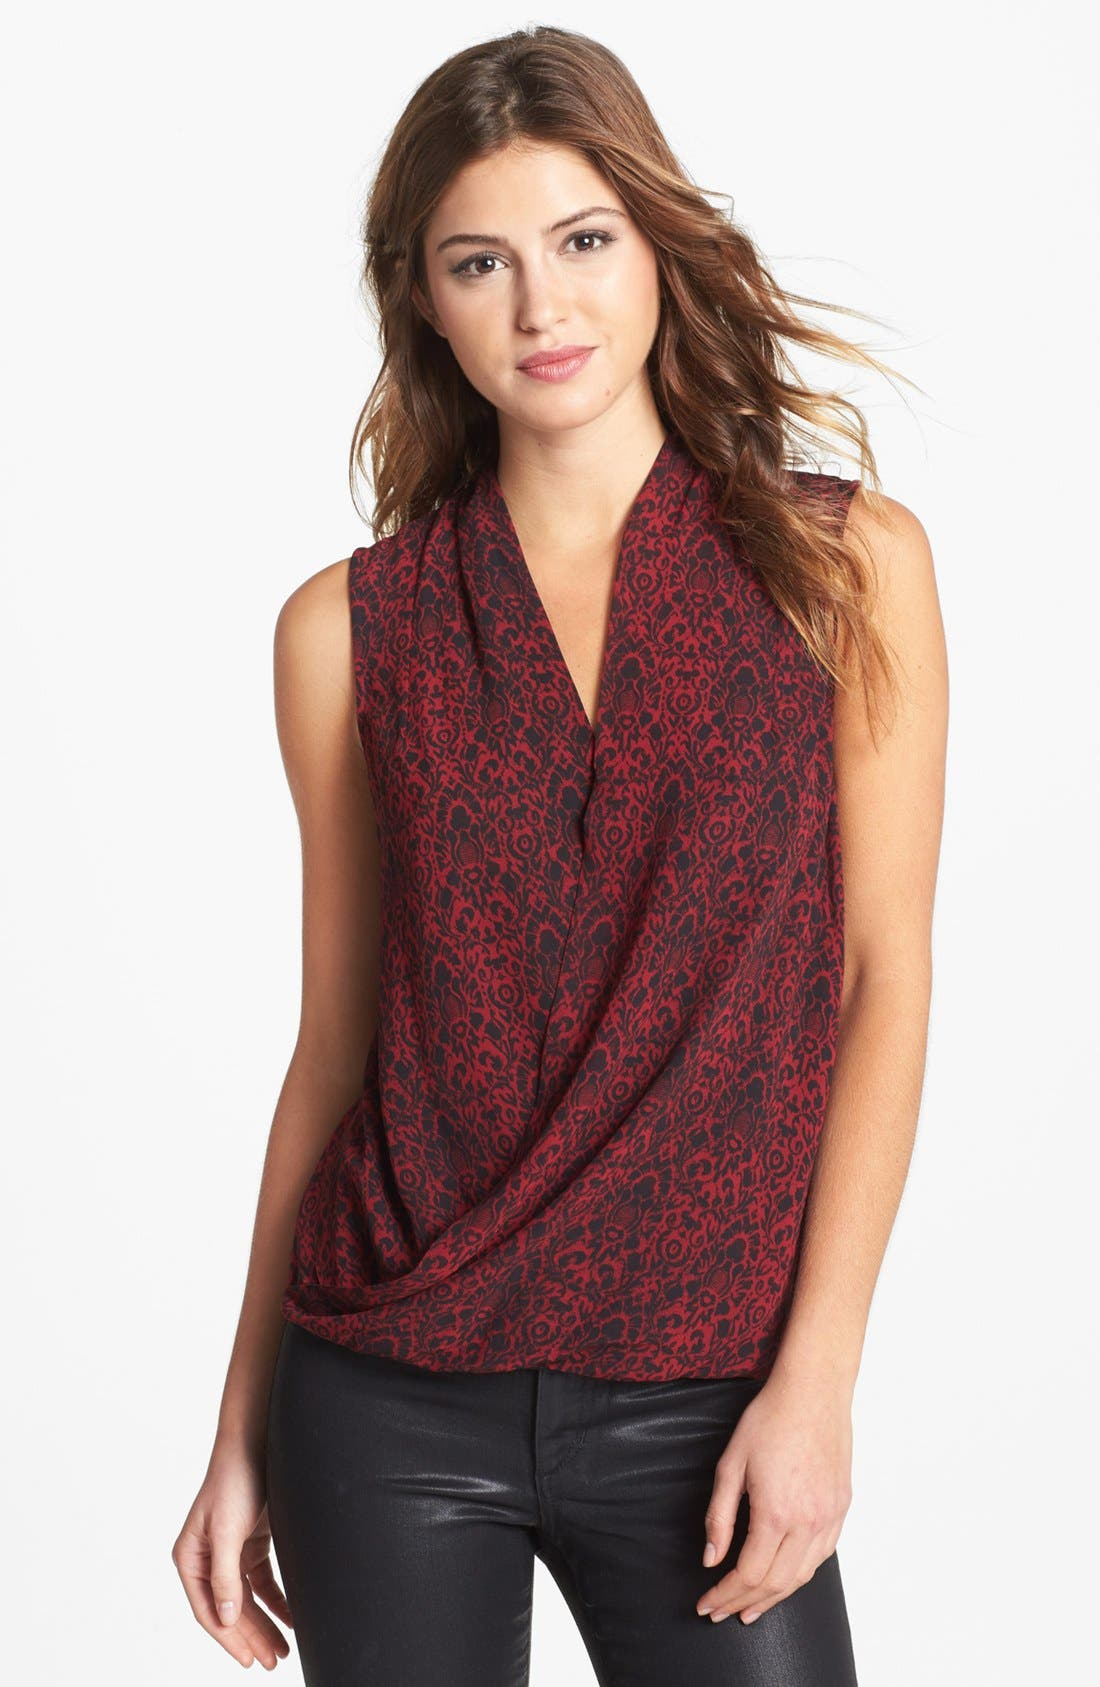 Alternate Image 1 Selected - Vince Camuto Sleeveless Faux Wrap Print Blouse (Online Only)